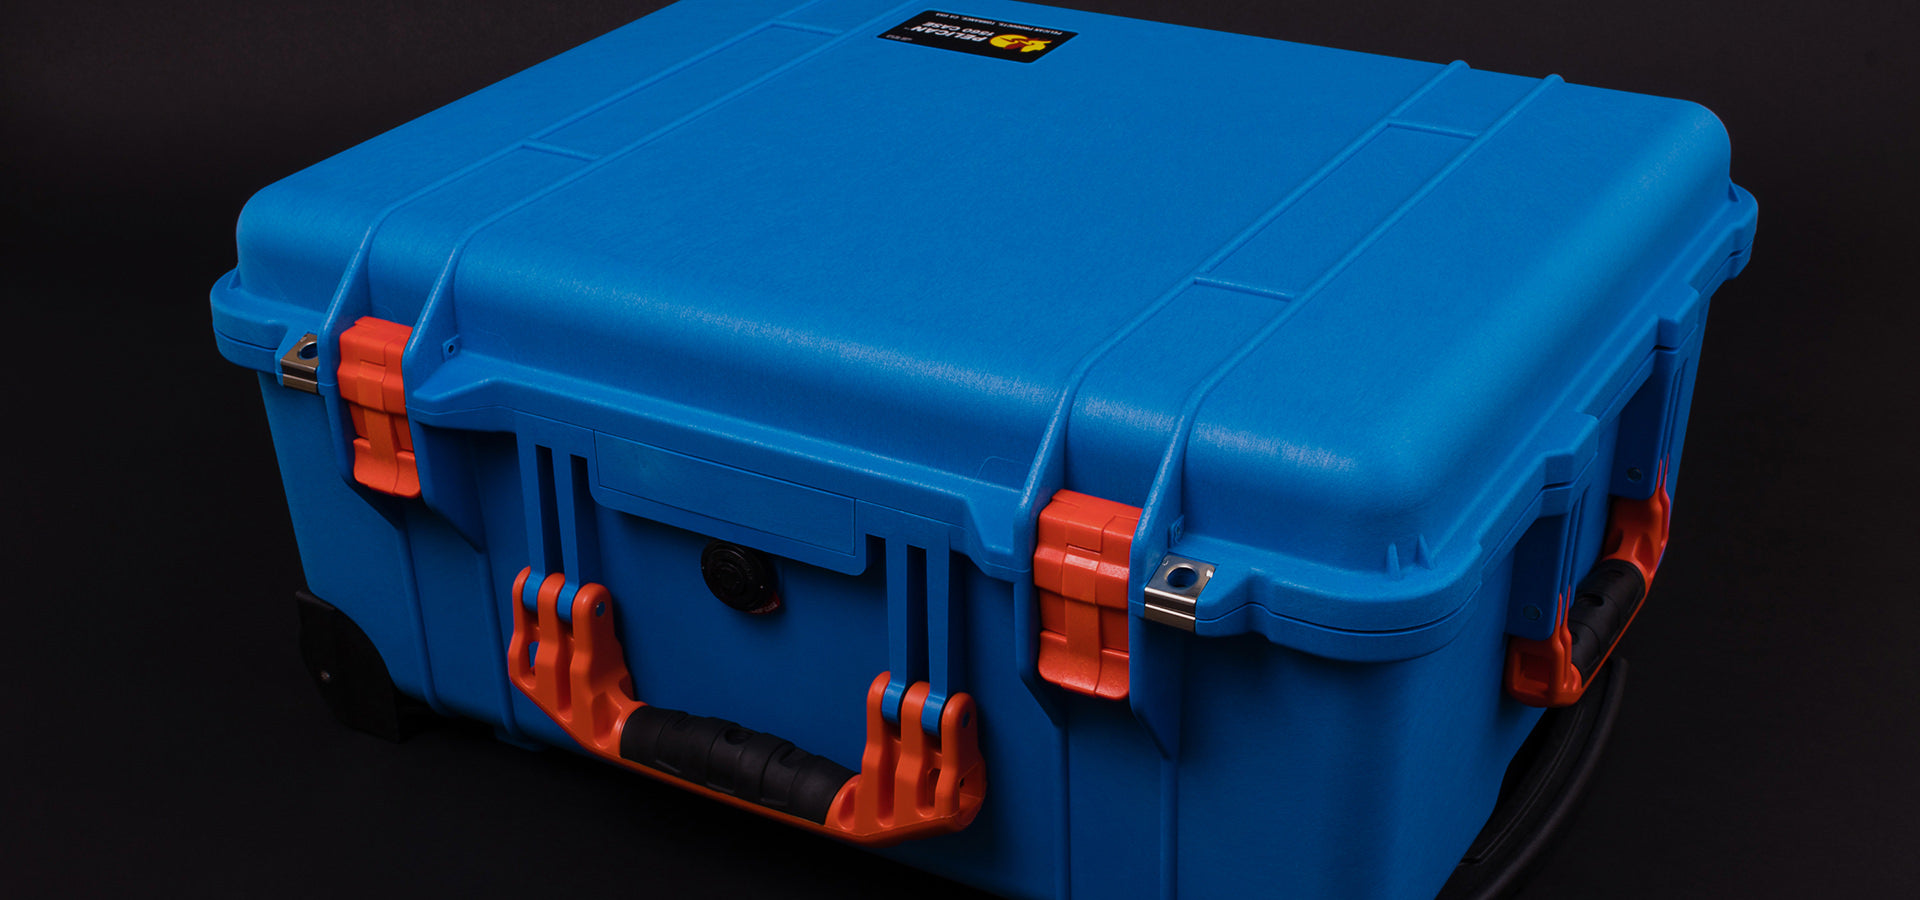 Blue Pelican 1560 Case with Orange Handles and Latches on Black Background